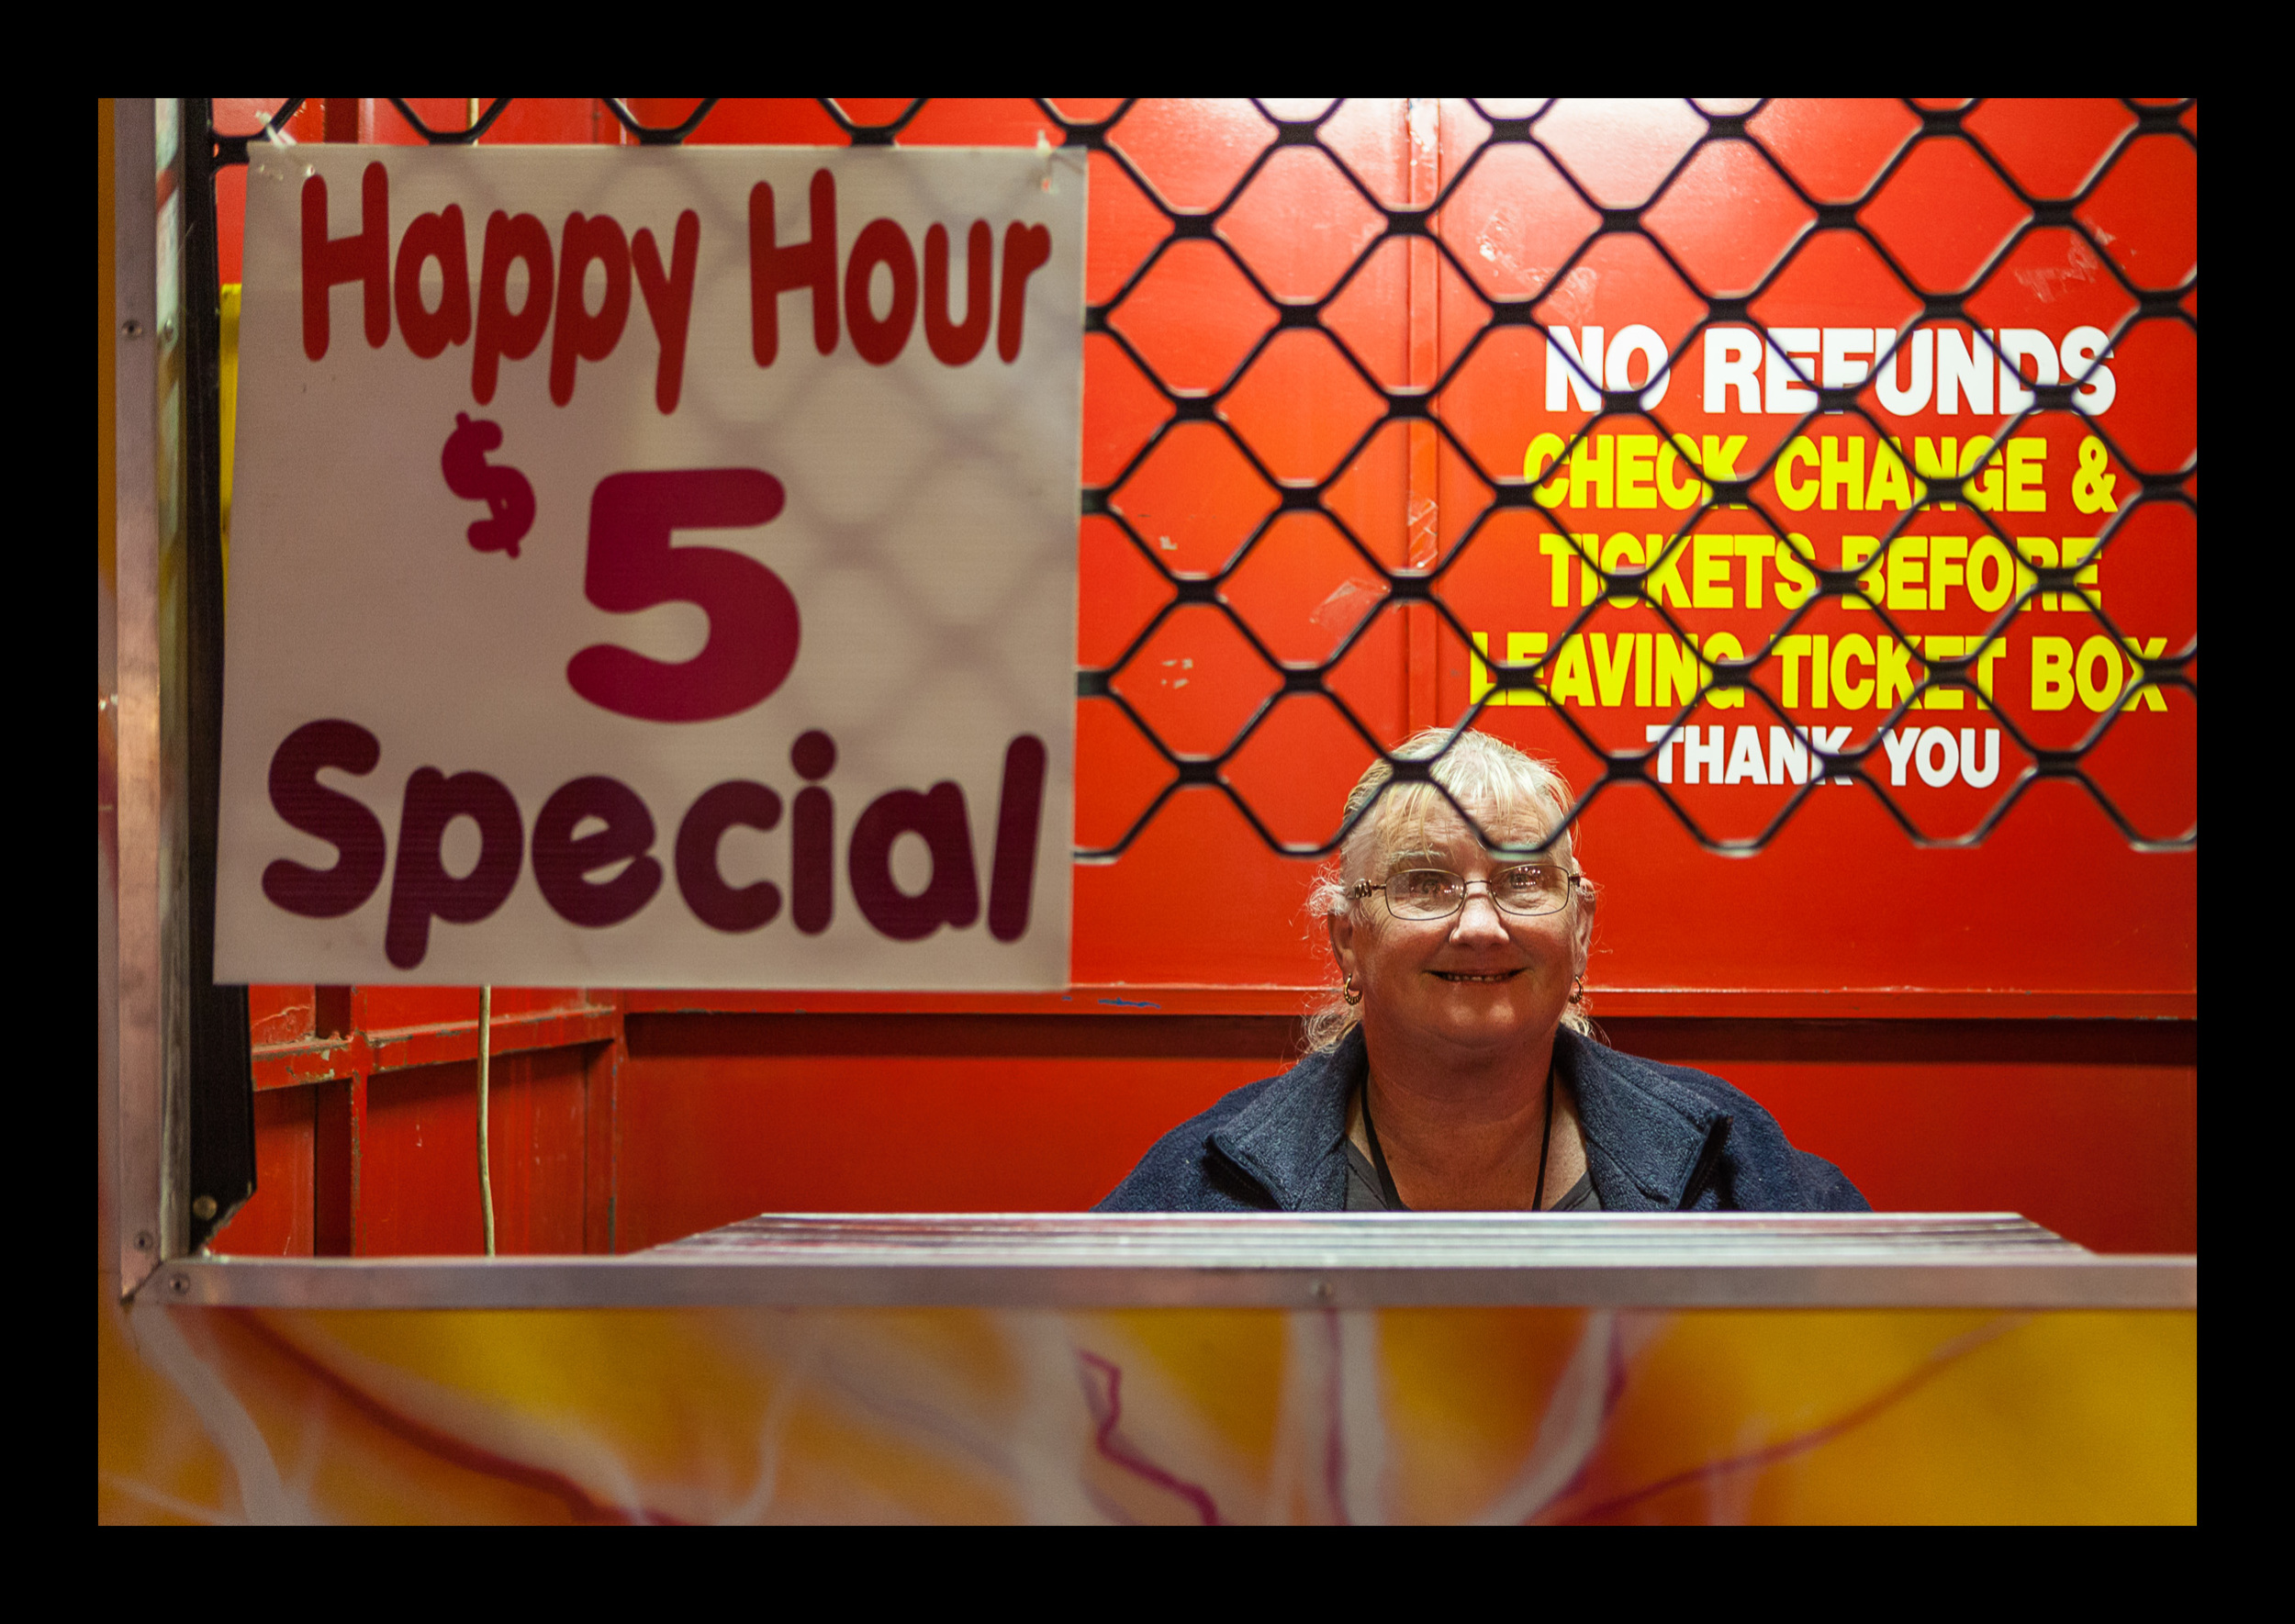 Happy Hour $5 Special